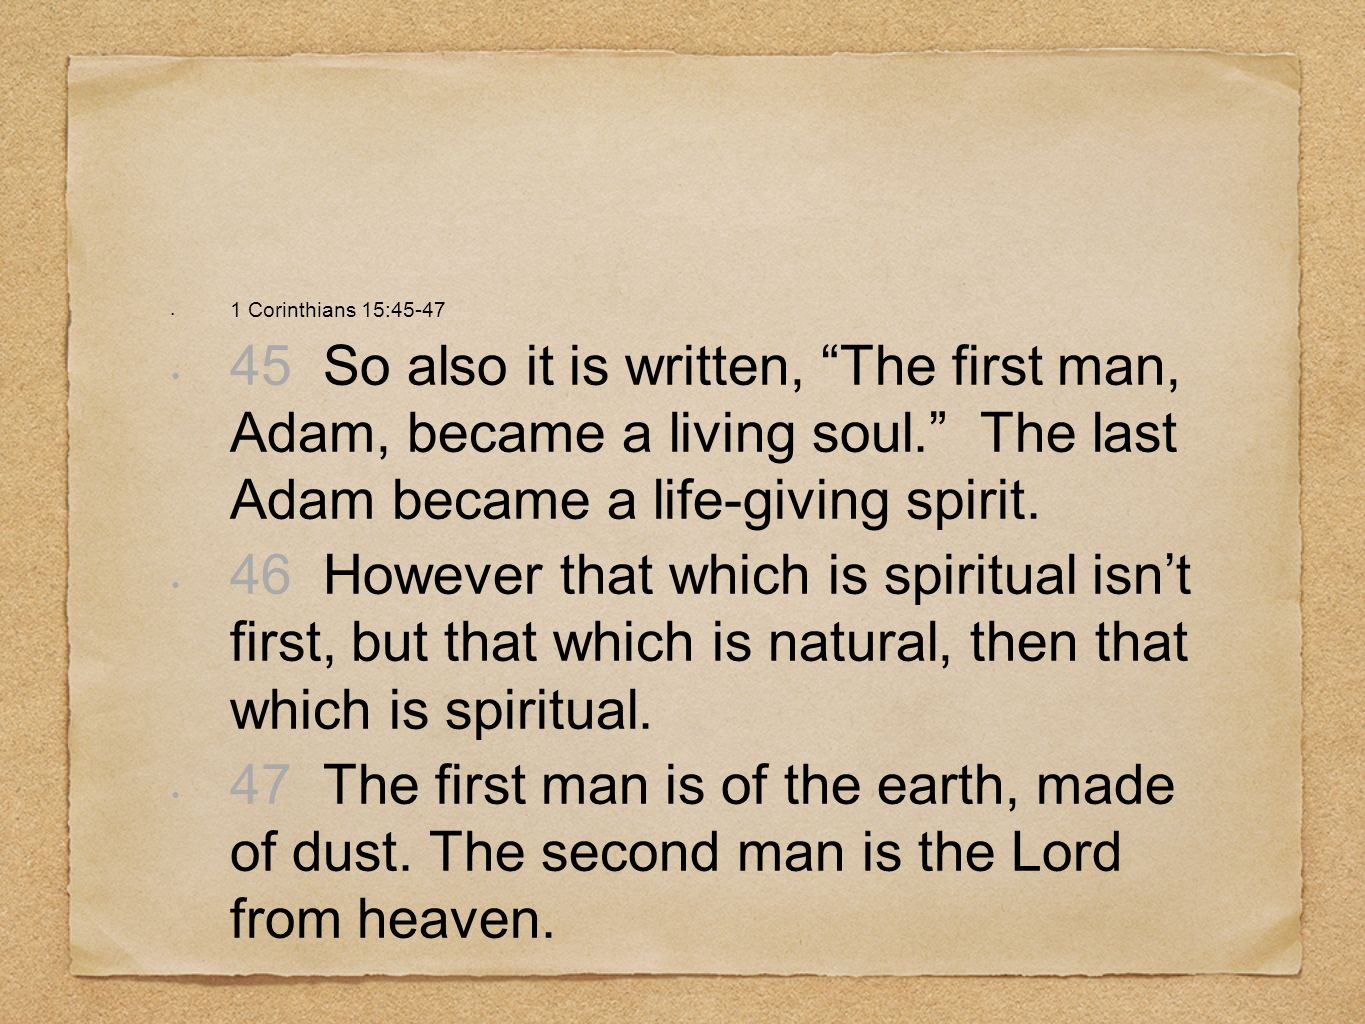 1 Corinthians 15:45-4745 So also it is written, The first man, Adam, became a living soul. The last Adam became a life-giving spirit.